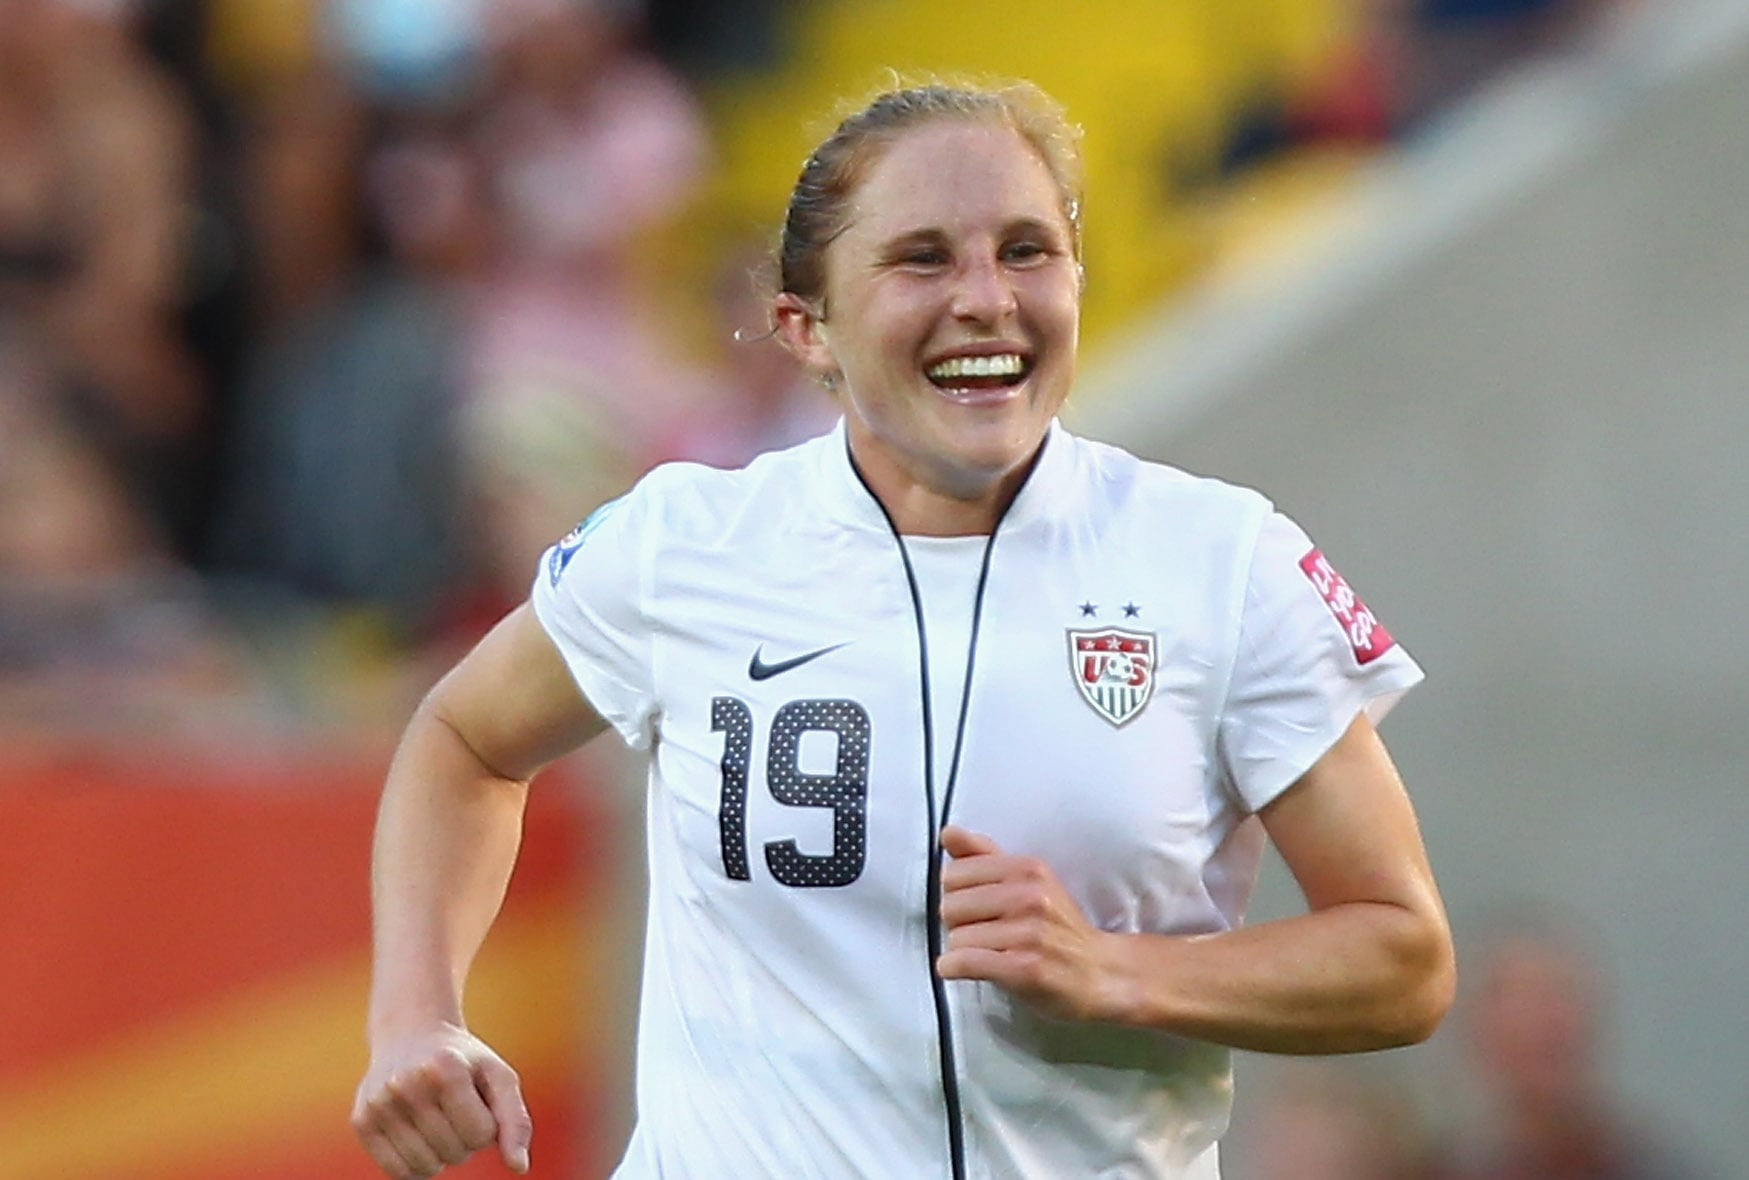 DRESDEN, GERMANY - JUNE 28:  Rachel Buehler of USA celebrates after she scores her team's 2nd goal during the 2011 FIFA Women's World Cup gruop C match between USA and Korea DPR at the Dresden Arena on June 28, 2011 in Dresden, Germany.  (Photo by Martin Rose/Bongarts/Getty Images)